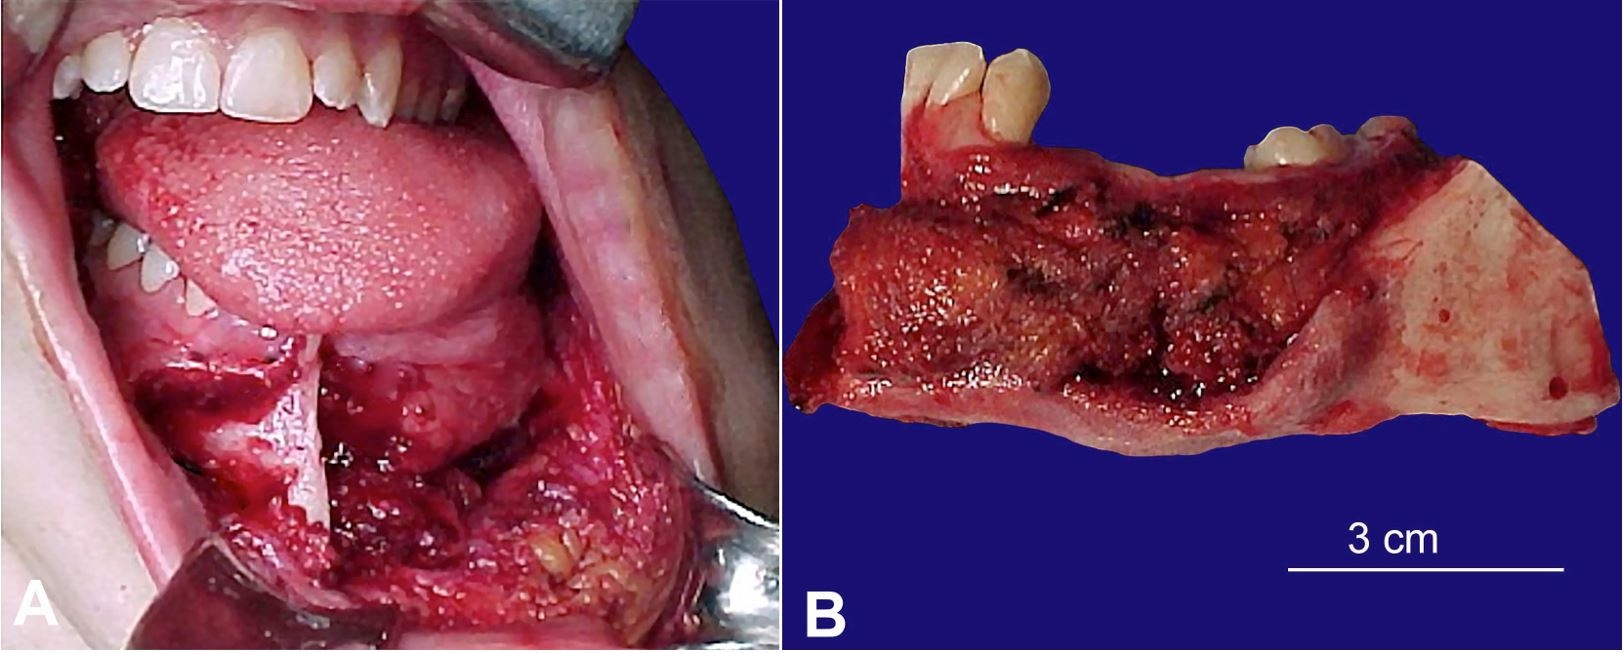 A - Intraoperative view of the segmental mandibulectomy. B - Resected surgical.